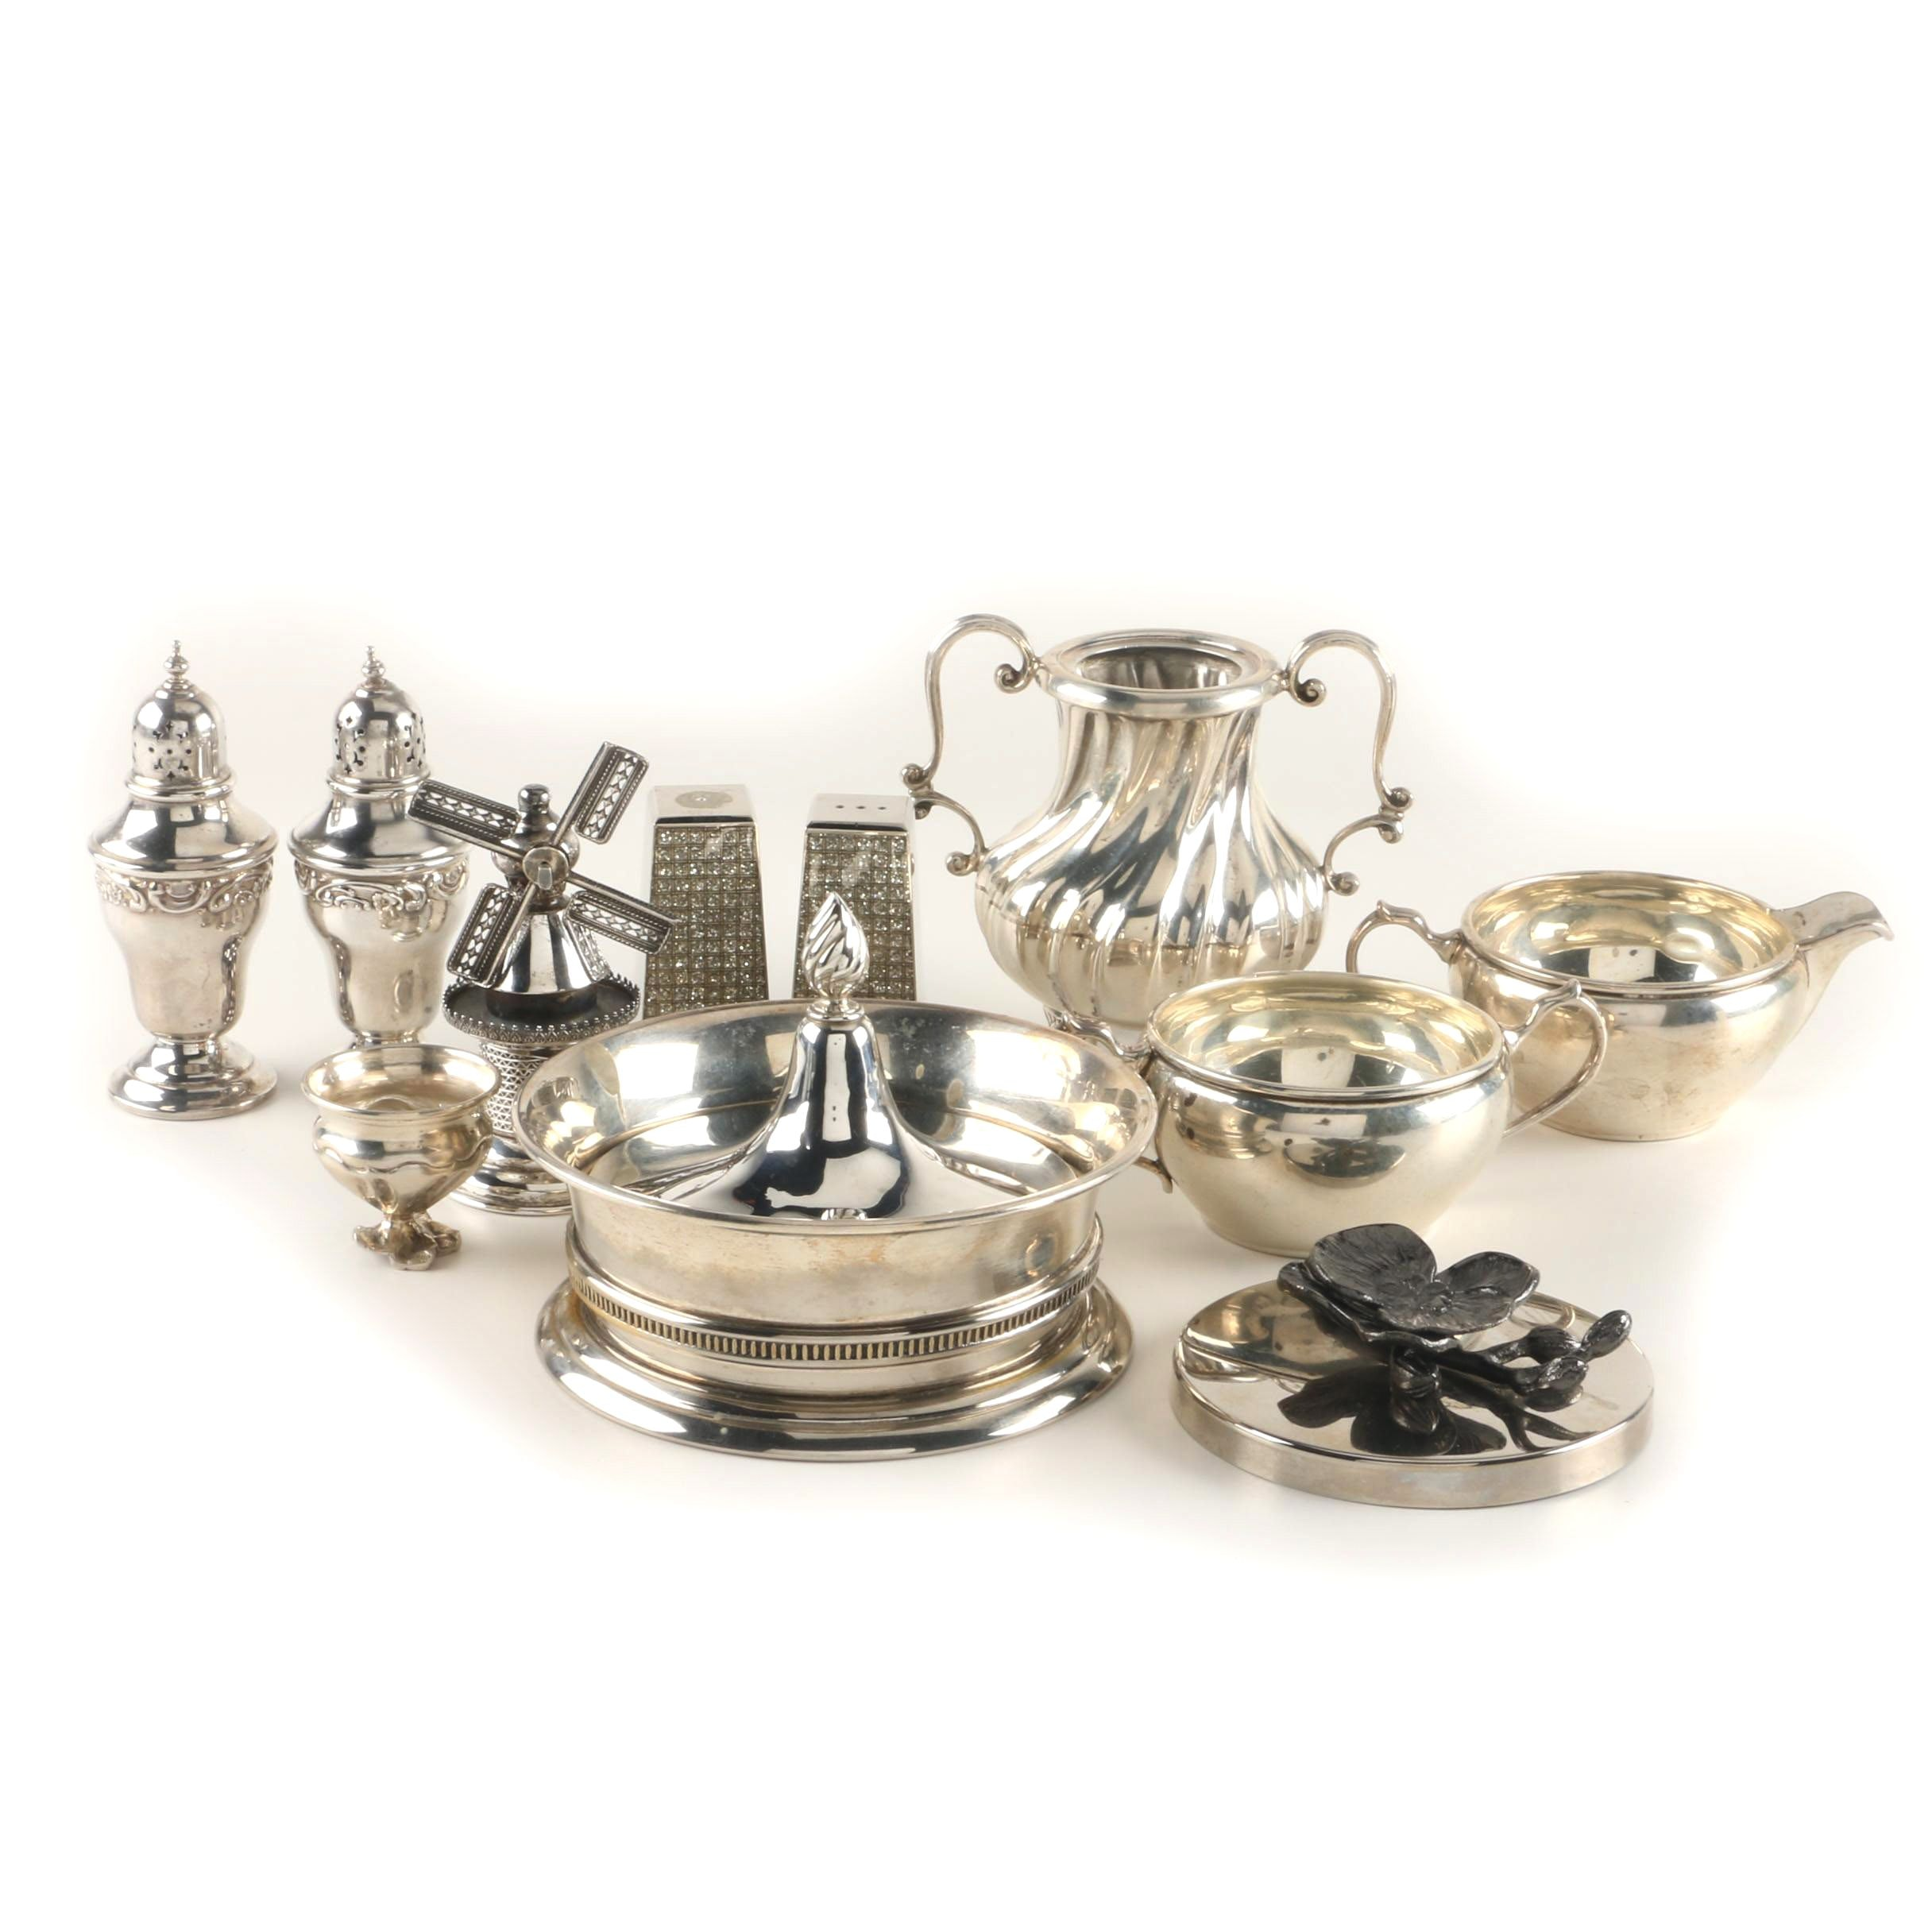 Sterling Silver and Metal Tableware Featuring Gorham Condiment Shakers  sc 1 st  EBTH.com & Pewter and Silver Plate Tableware Featuring Towle Boardman and ...